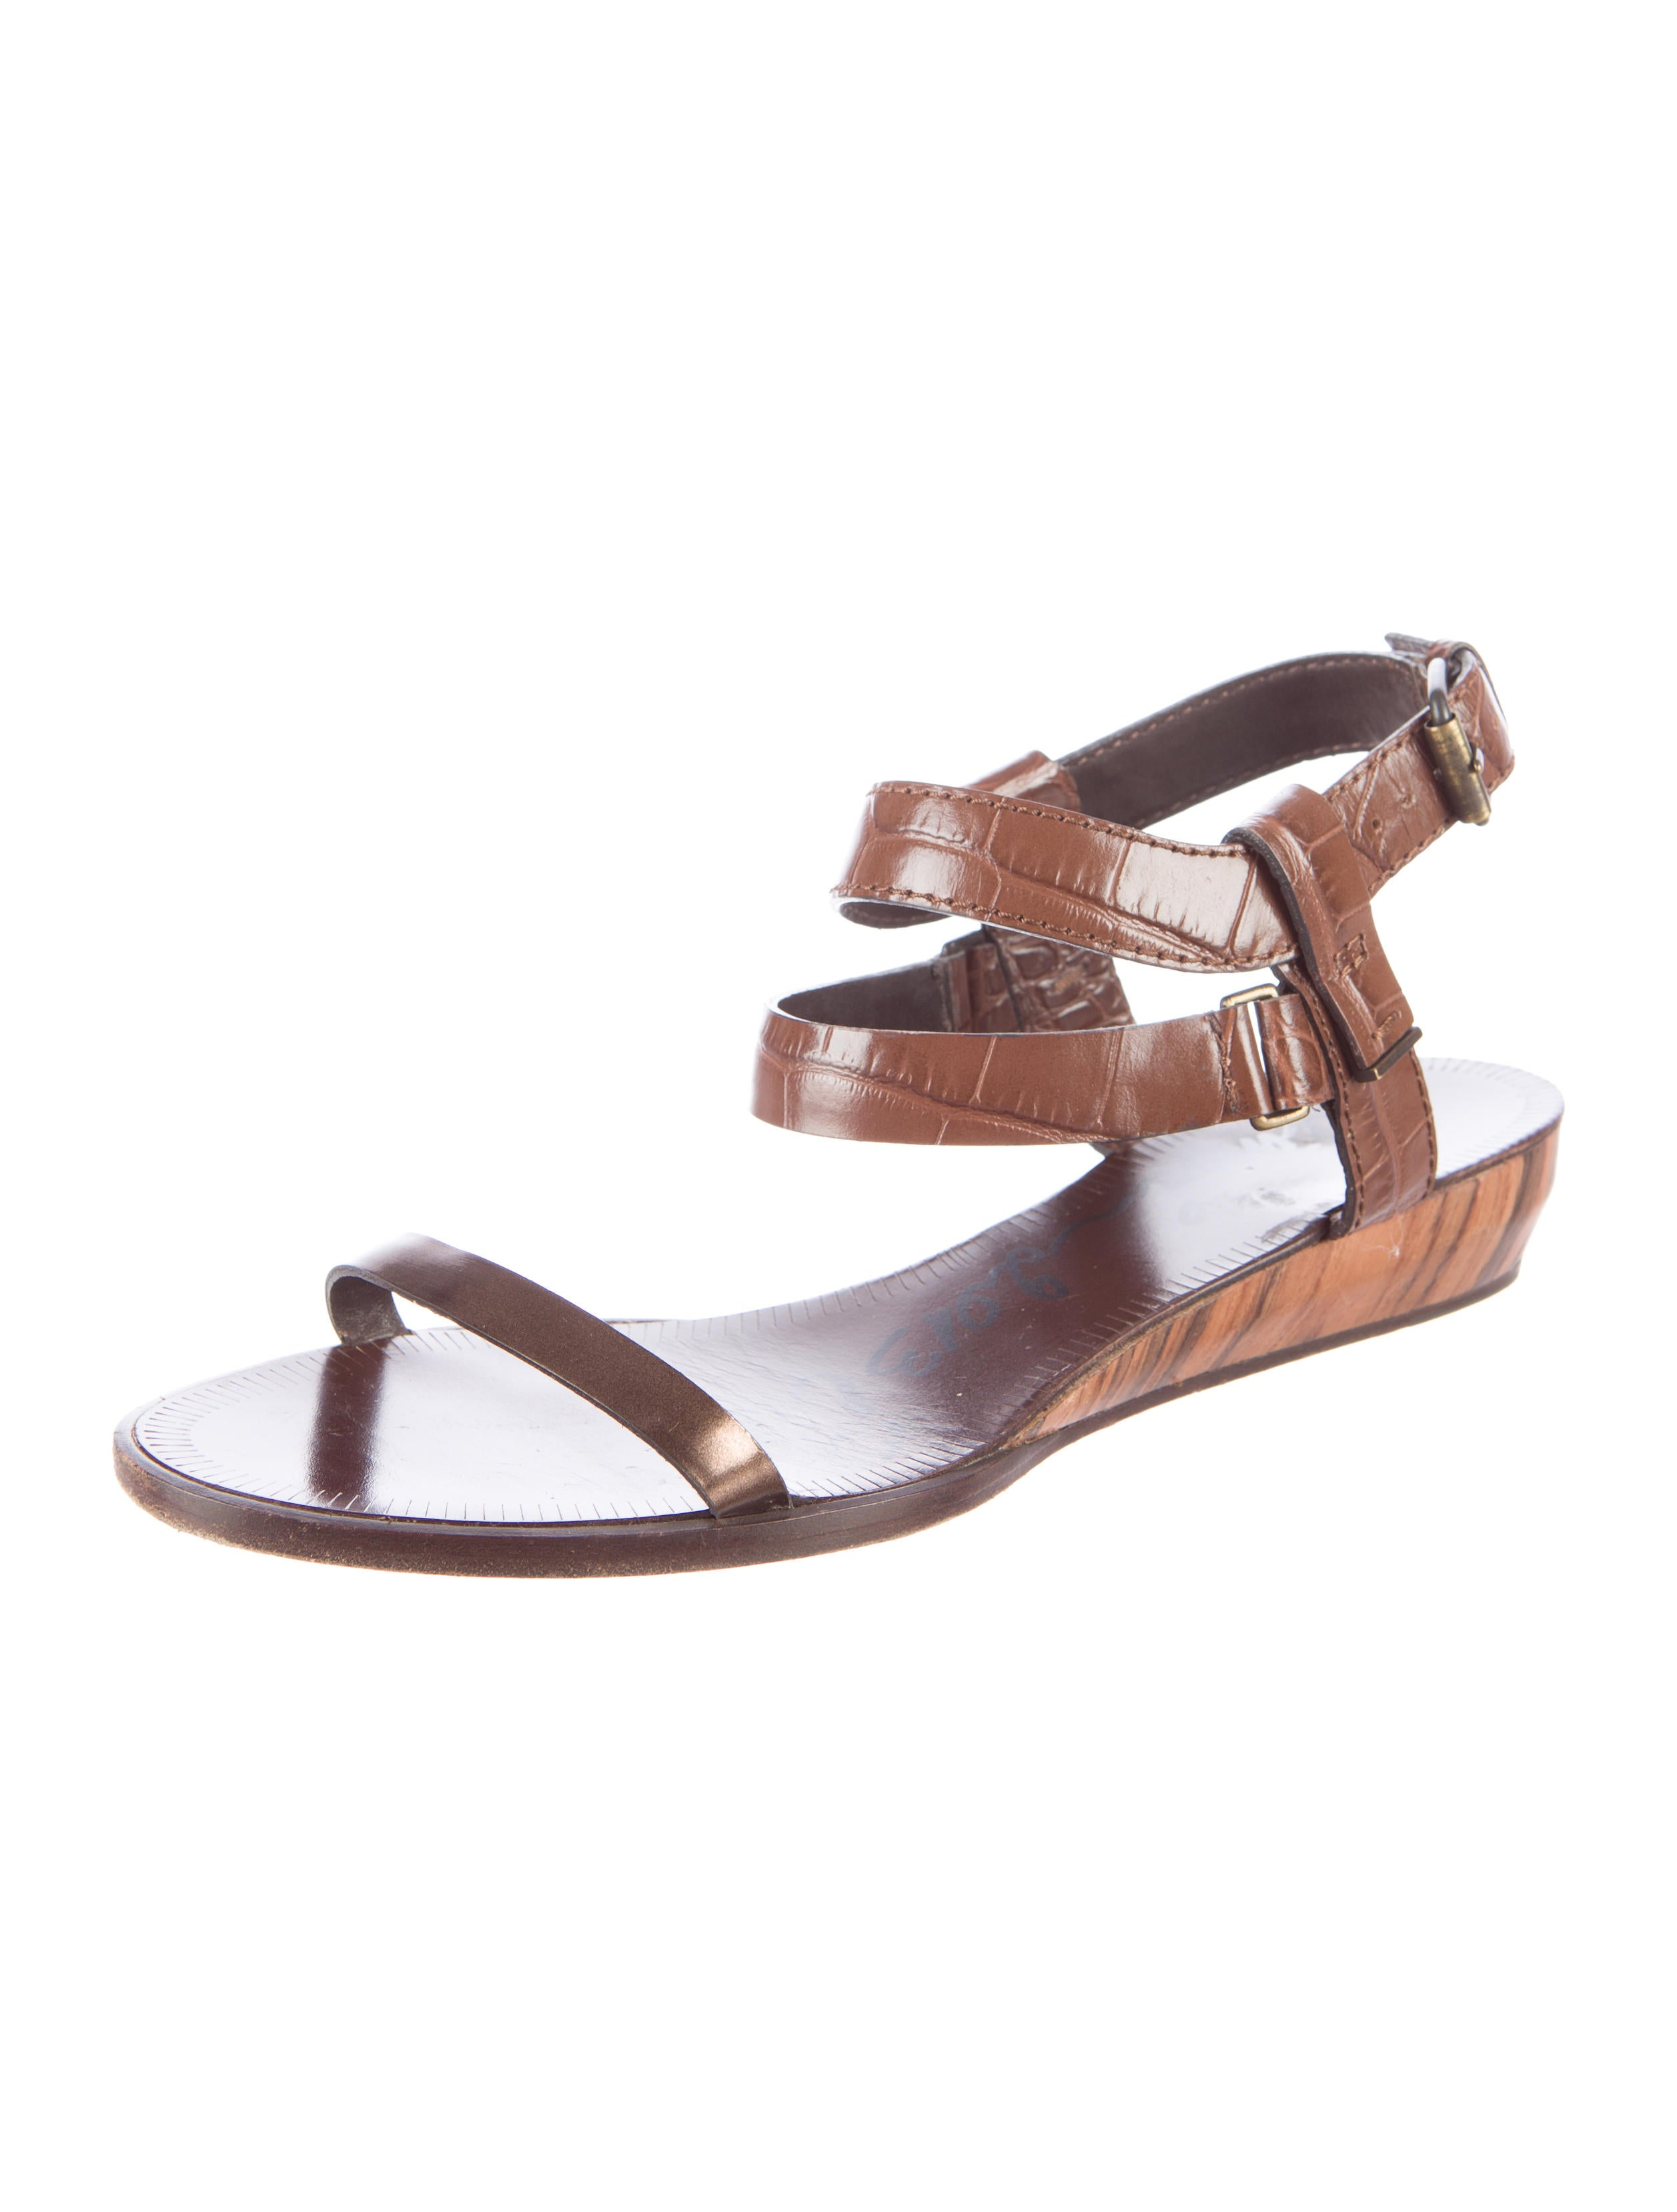 Find great deals on eBay for leather strappy sandals. Shop with confidence.